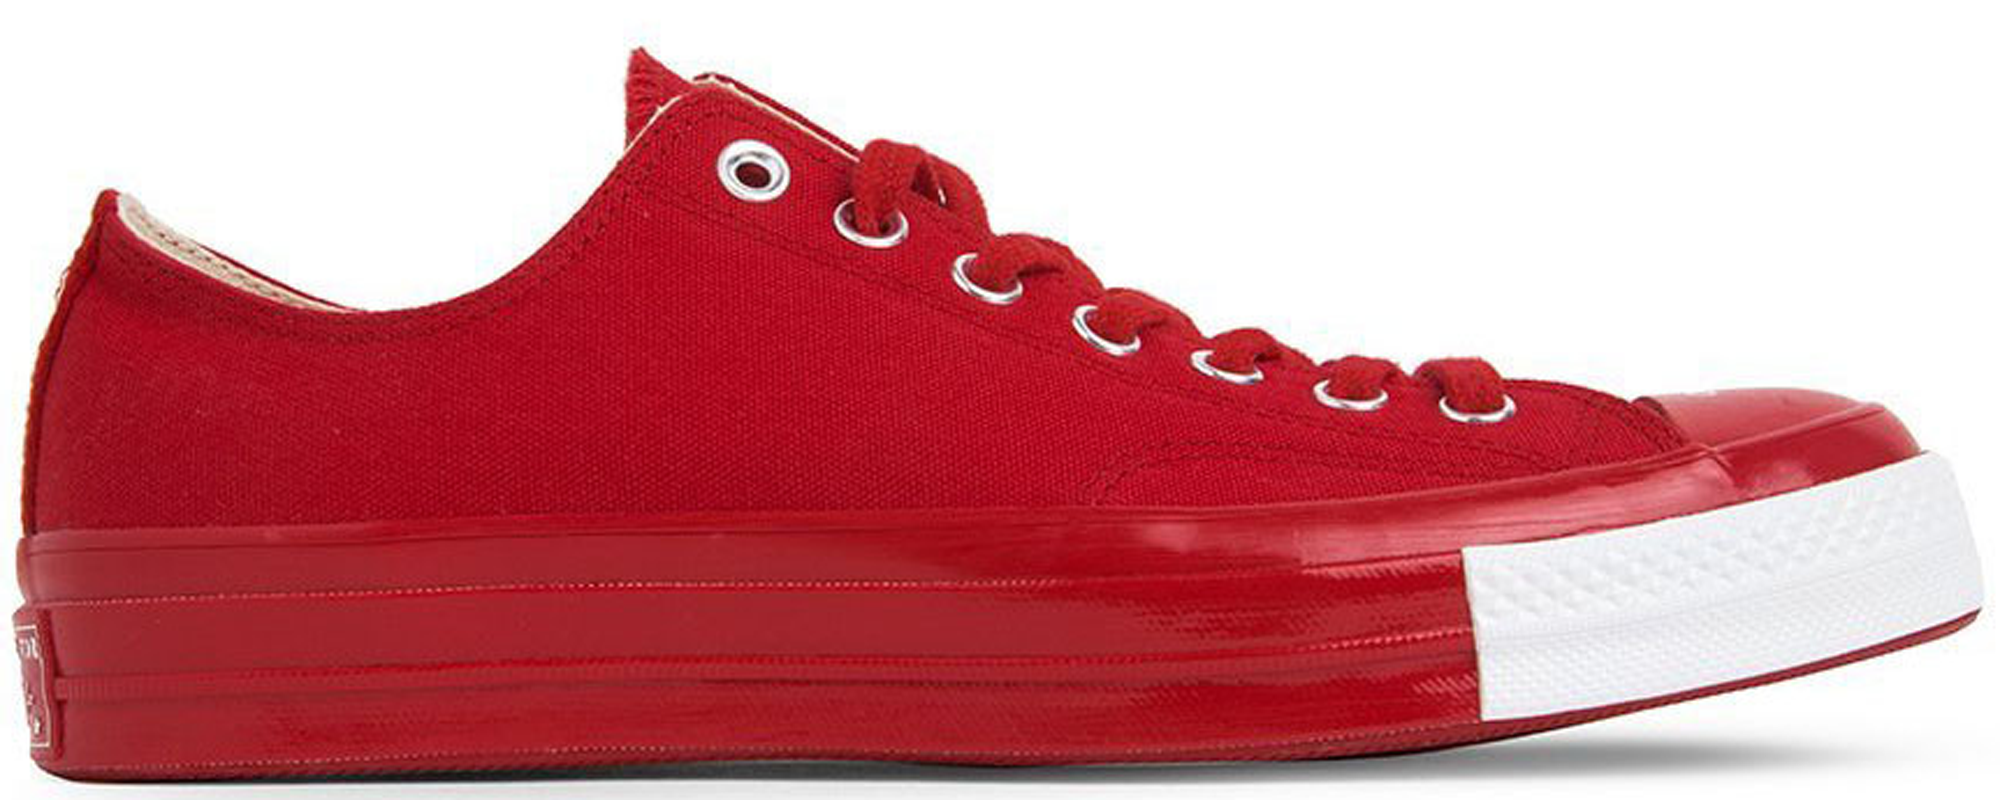 Converse Chuck Taylor All-Star 70s Ox Undercover Red